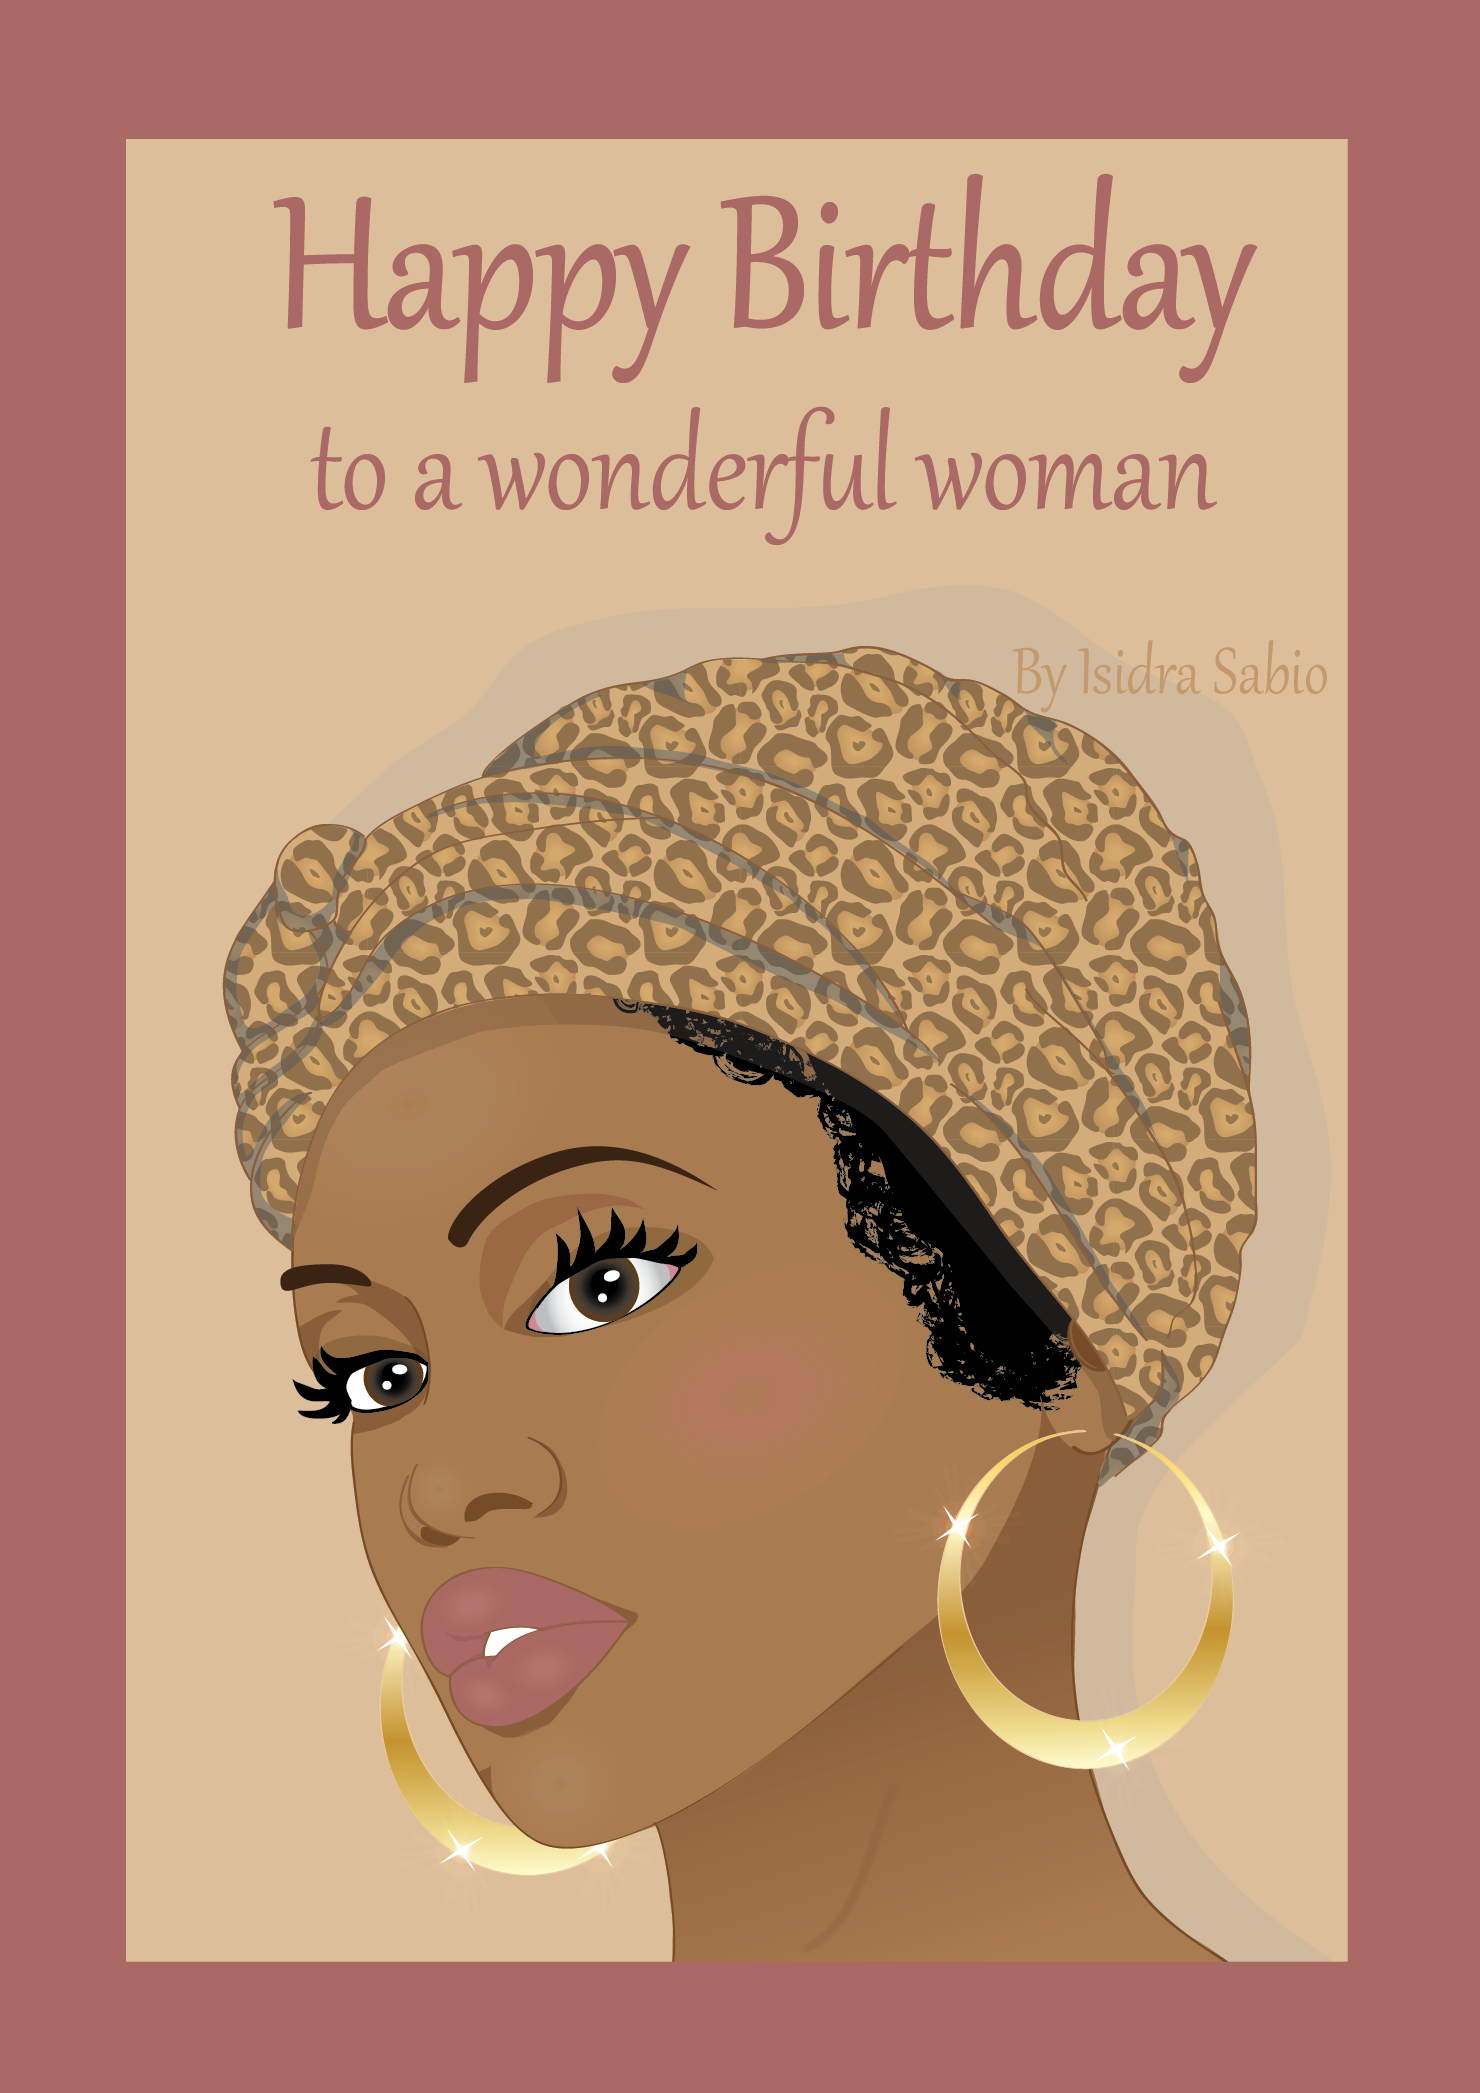 This Afrocentric Birthday Card For Women Shows The Face Of A Gorgeous African American Black Woman She Has Beautiful Eyes And Full Lips Is Wearing